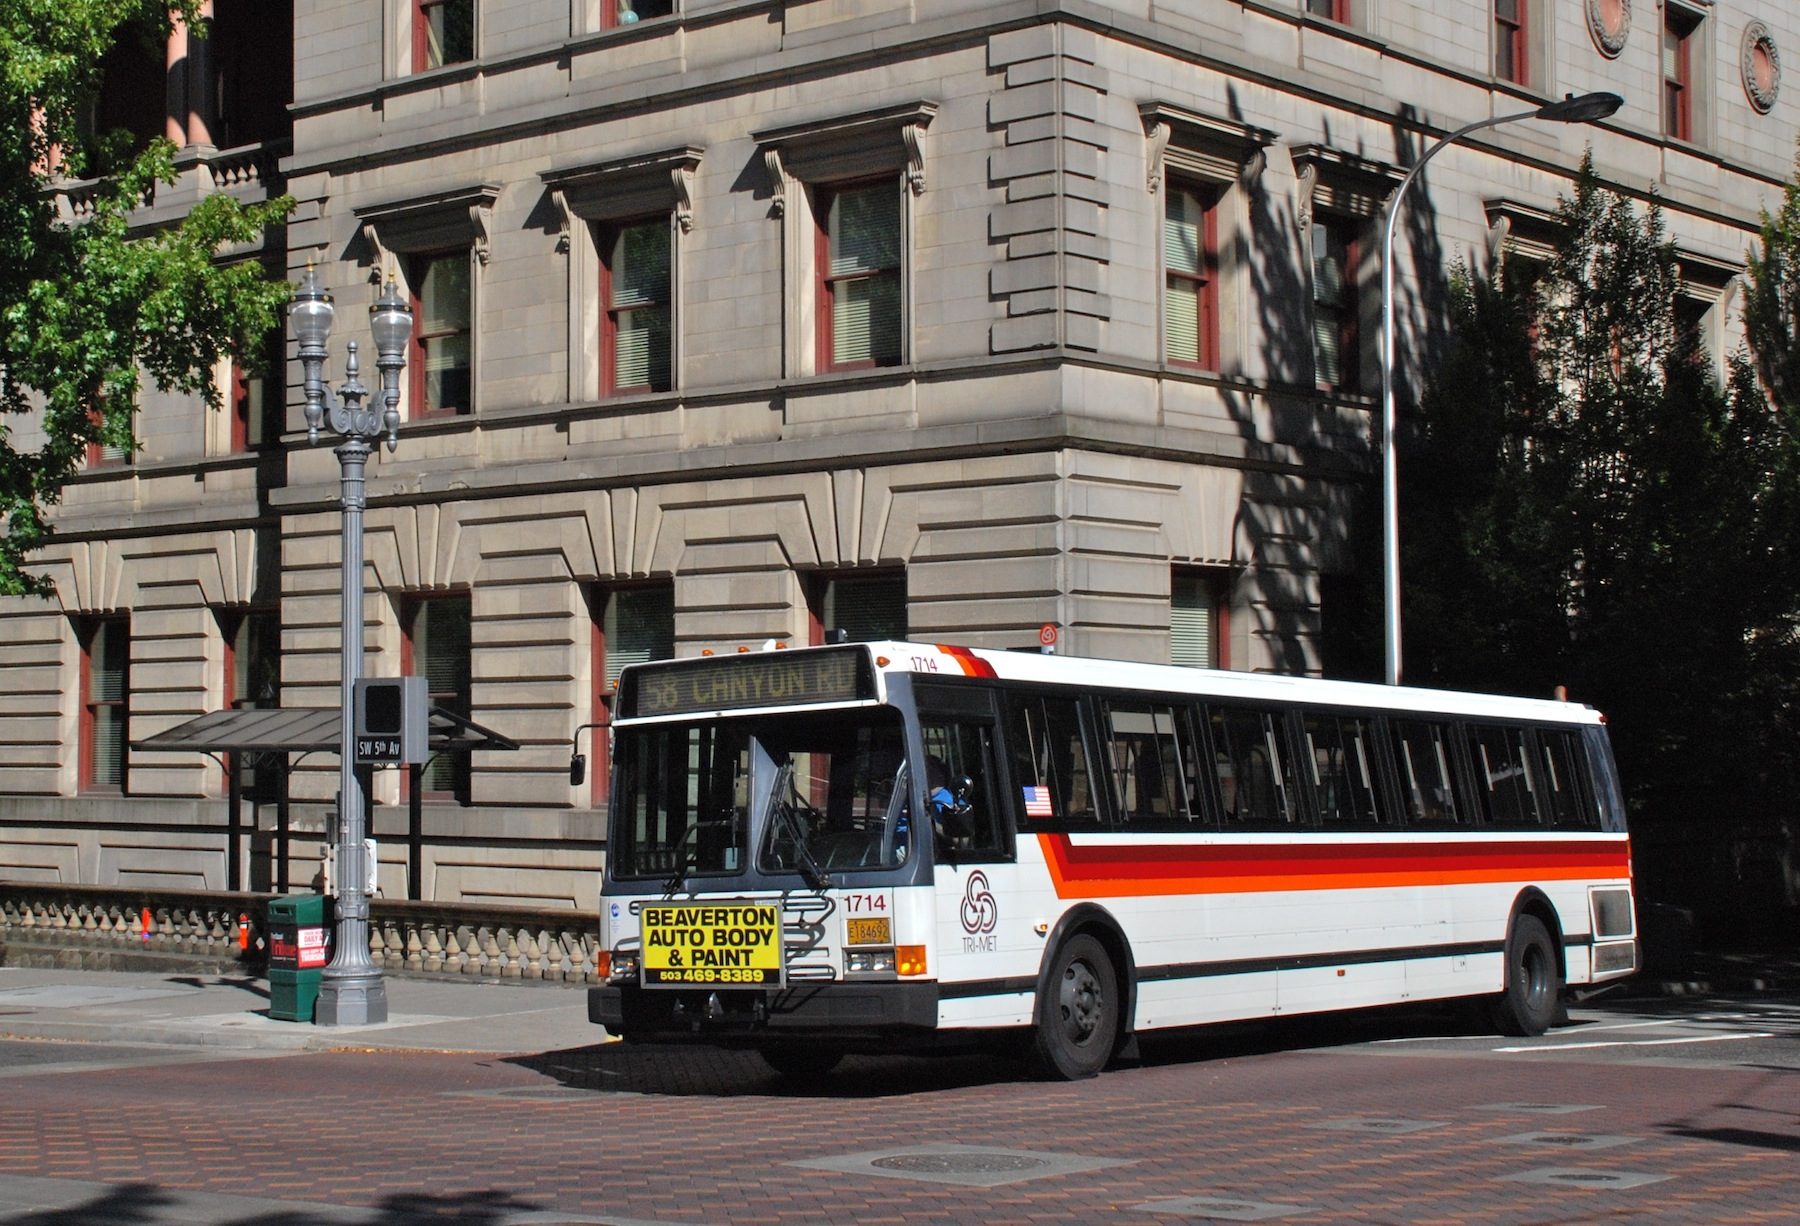 File:1992 Flxible bus, TriMet 1714, in downtown Portland ...